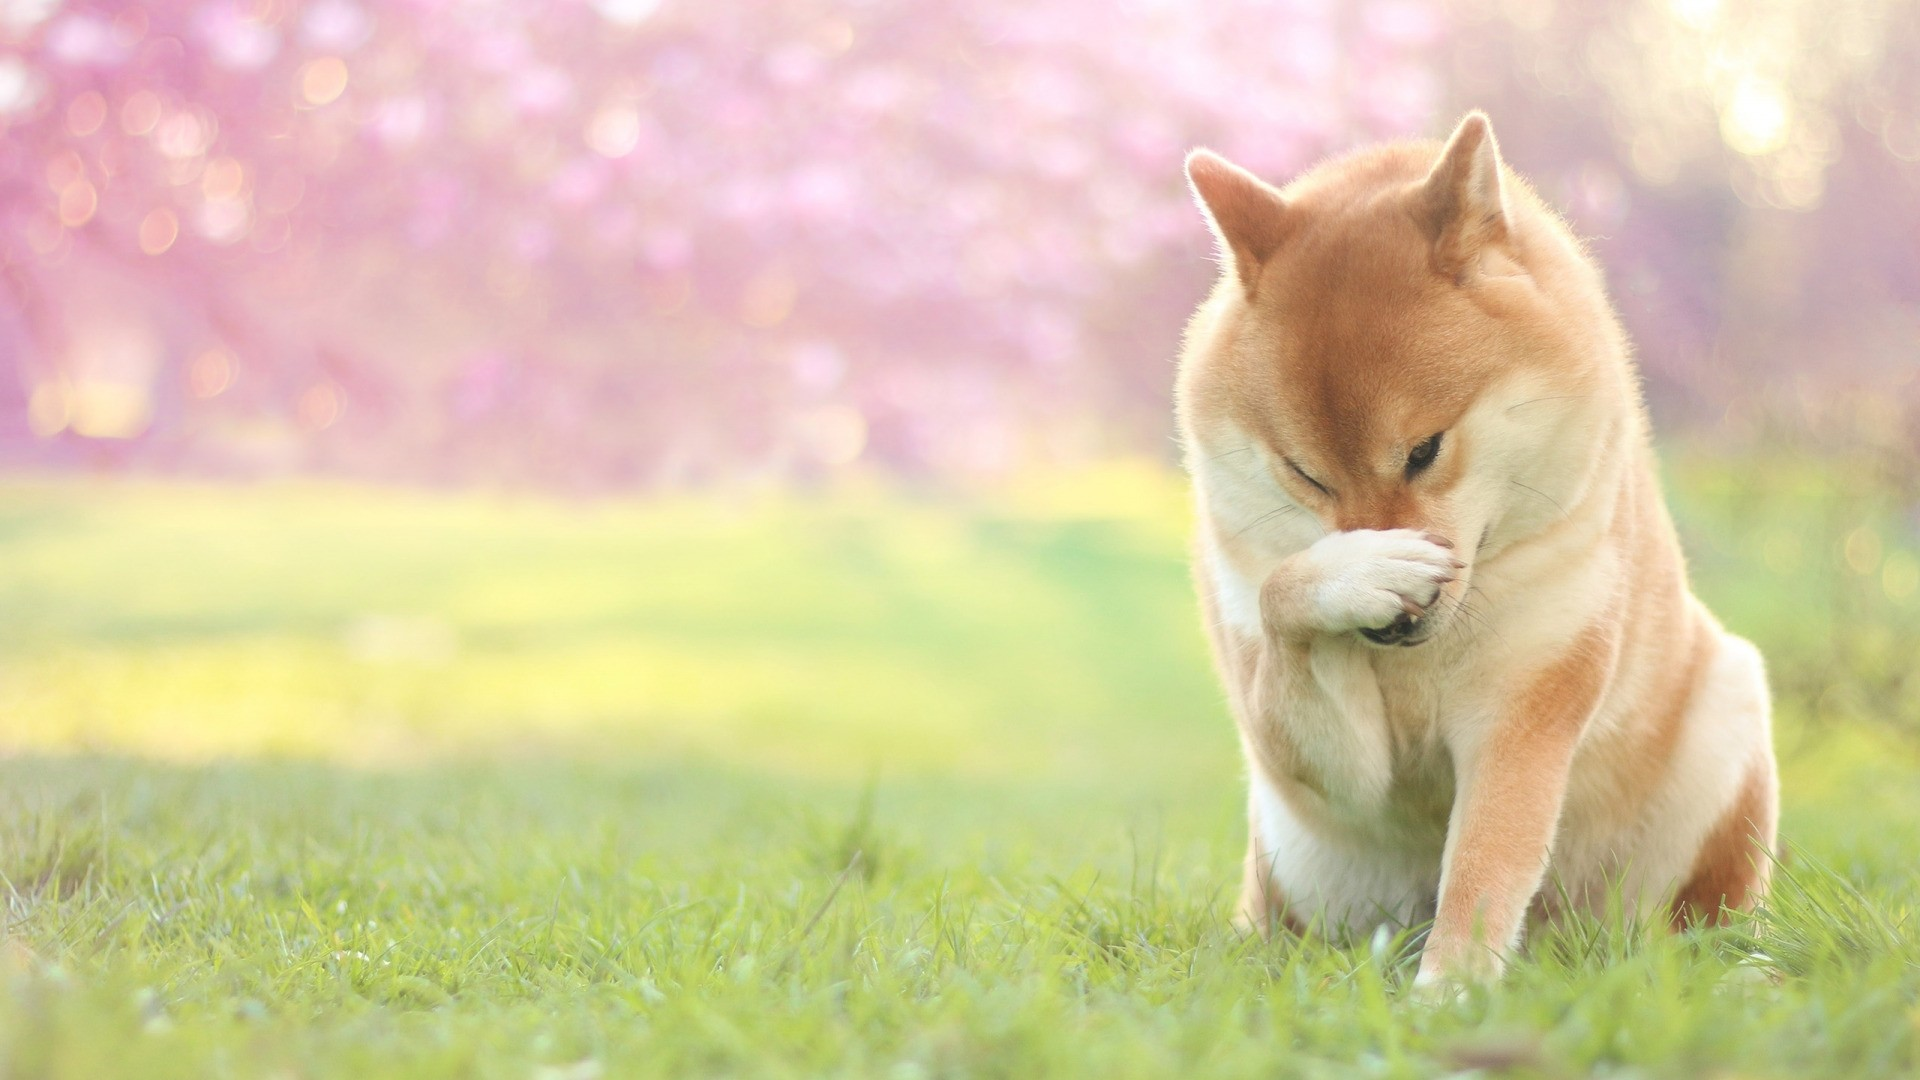 Shiba Inu Wallpaper Download